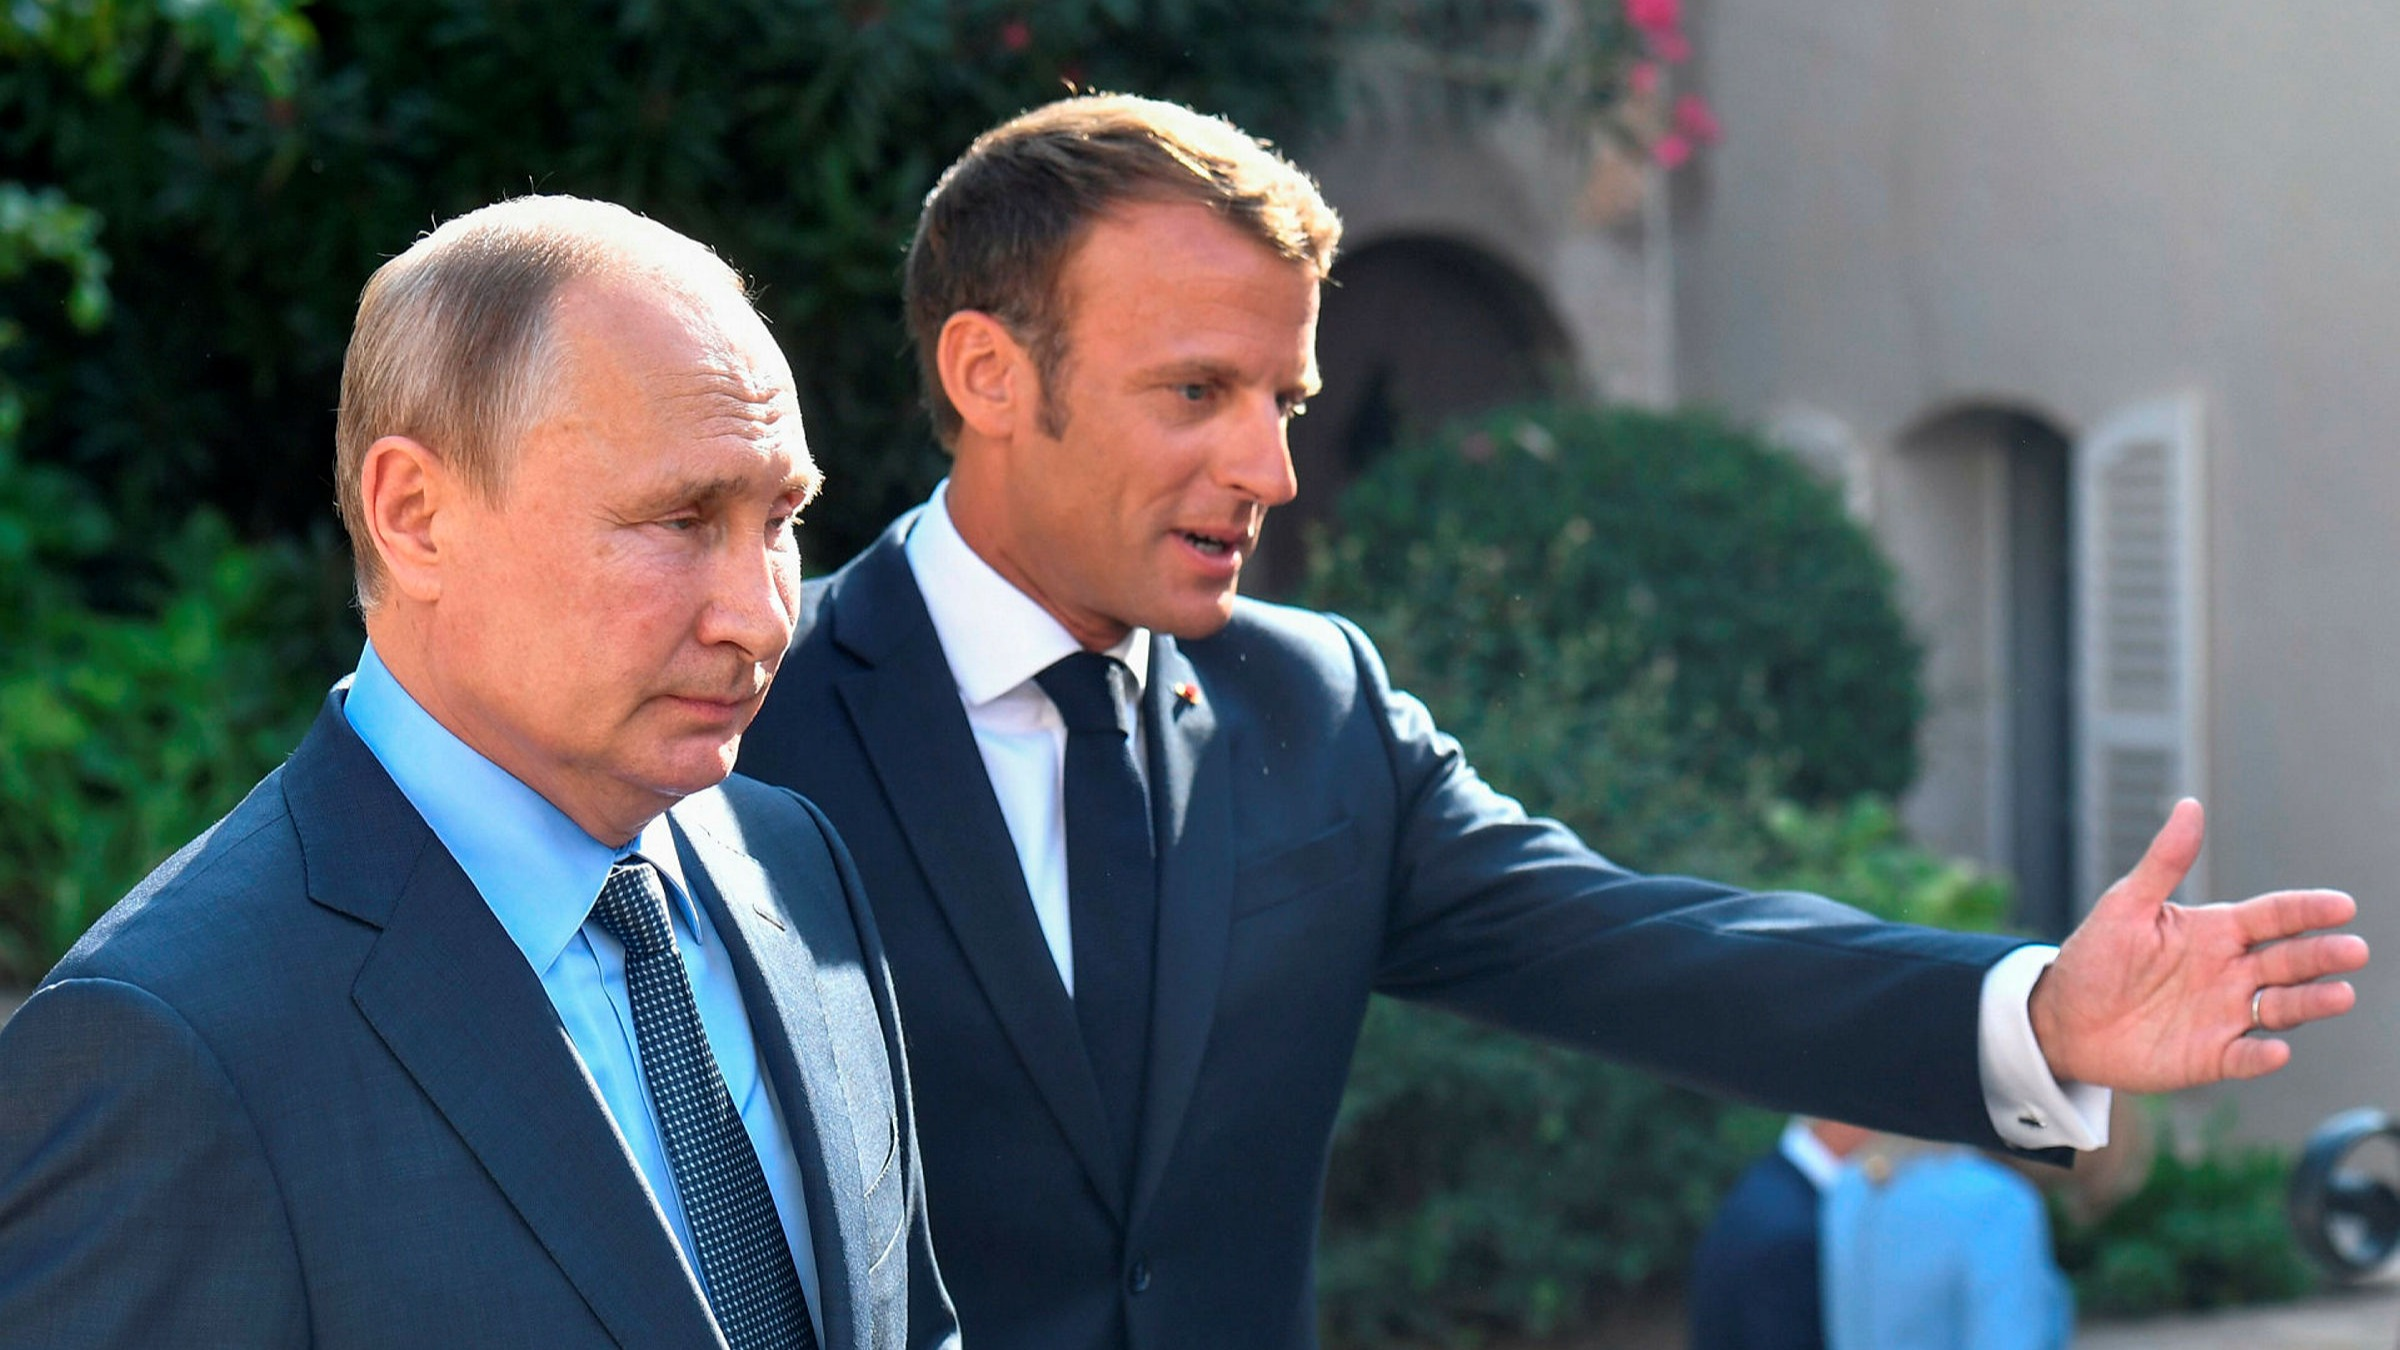 Macron S Rapprochement With Putin Is Not Worth It Financial Times